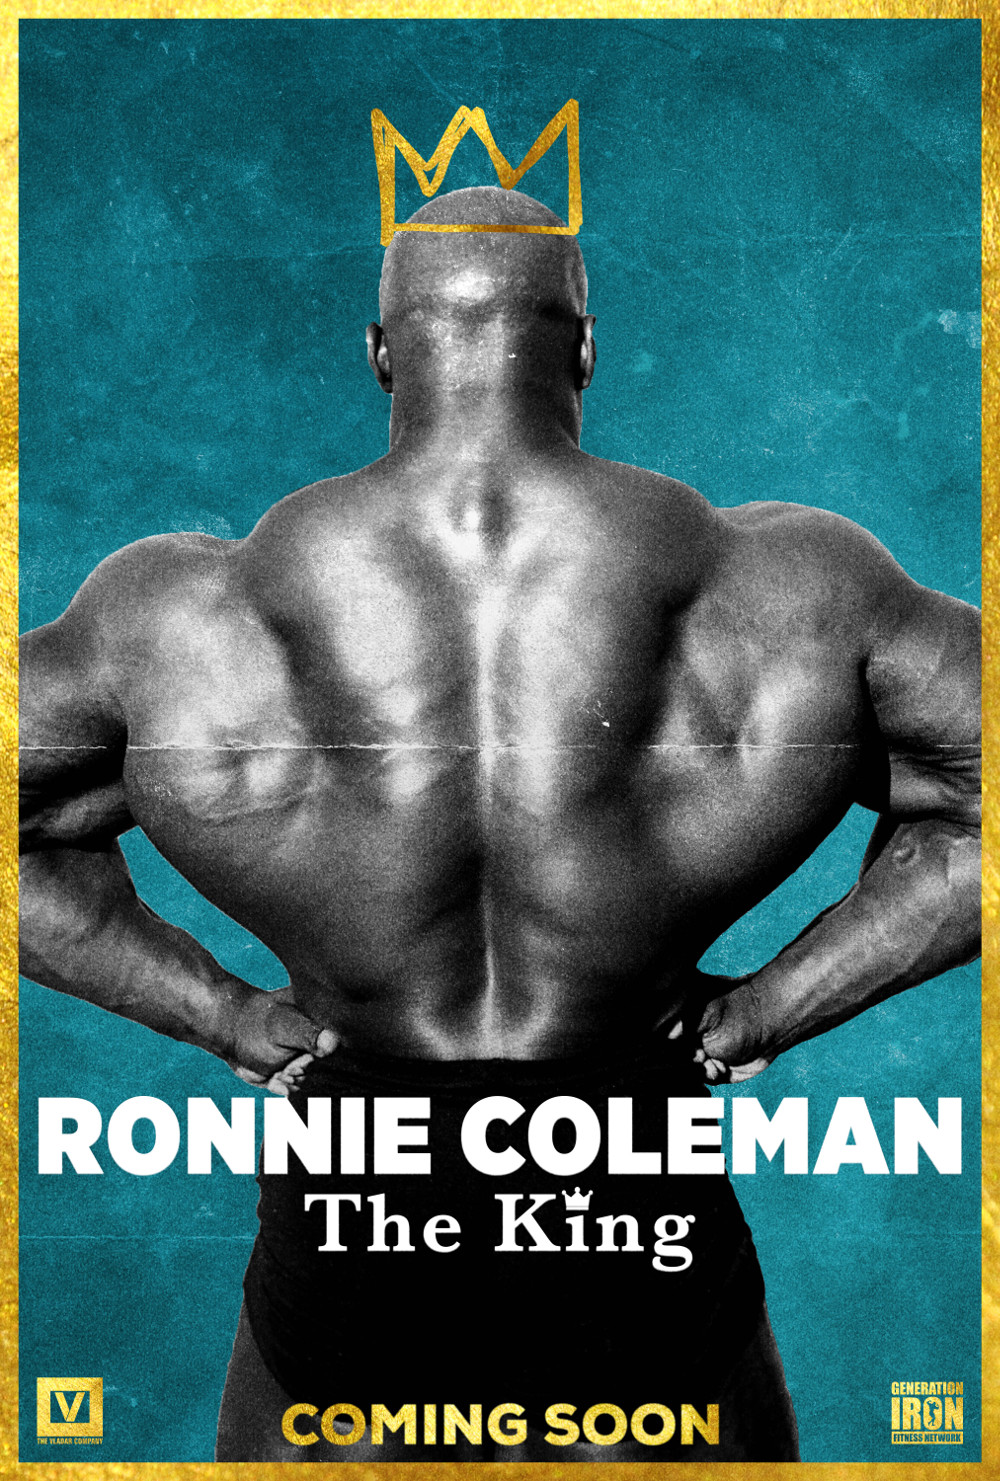 Ronnie Coleman: The King Teaser Poster Generation Iron